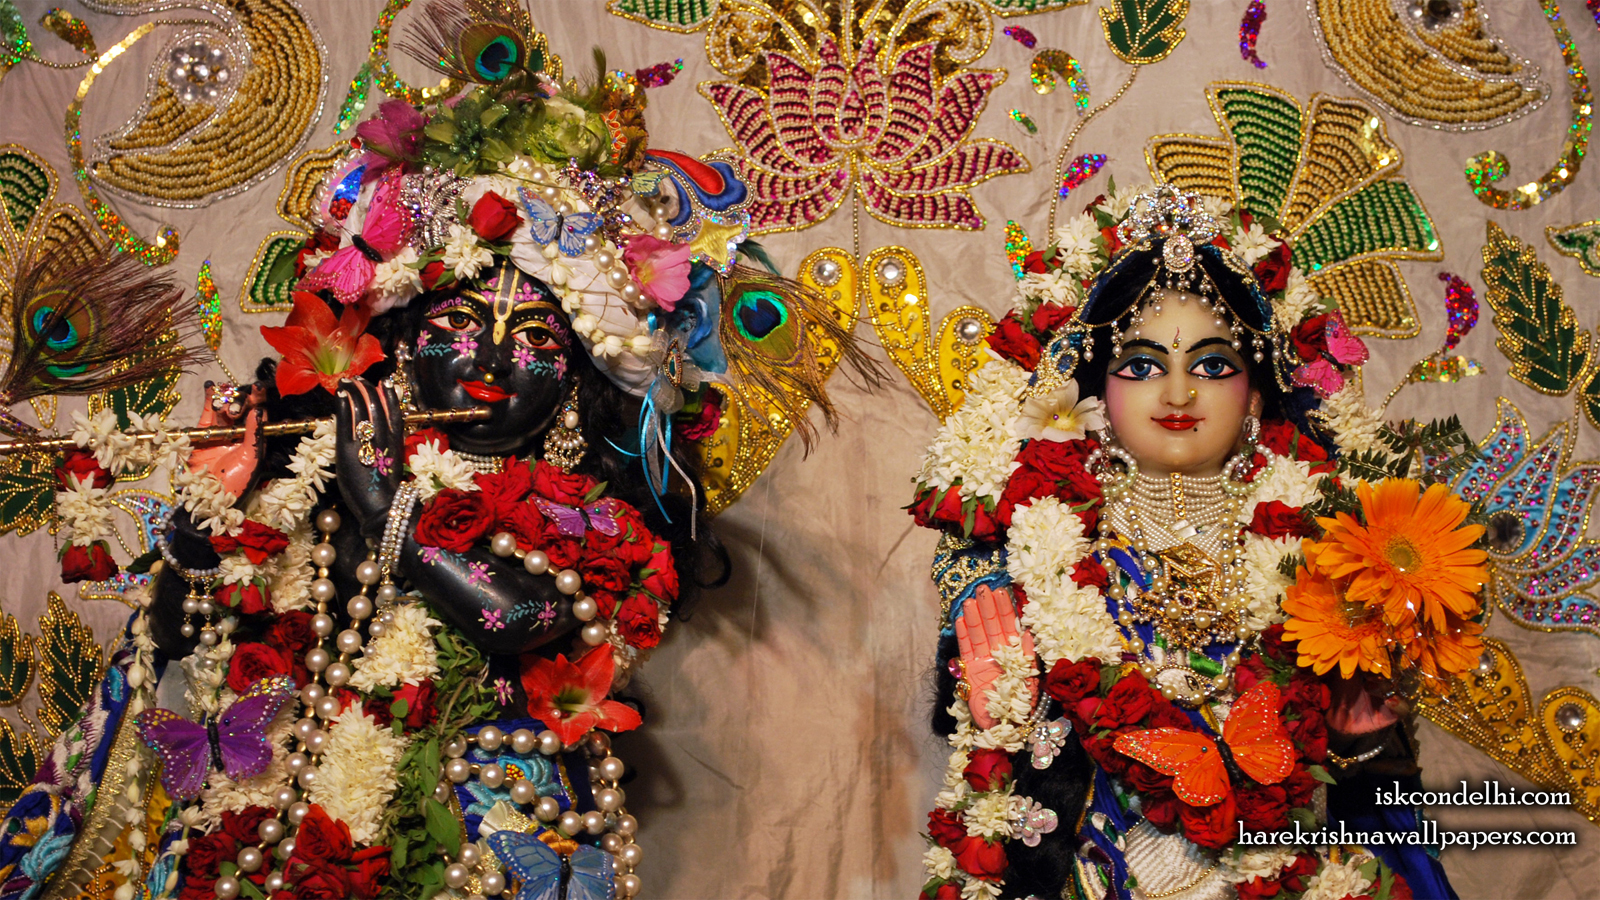 Sri Sri Radha Parthasarathi Close up Wallpaper (002) Size 1600x900 Download